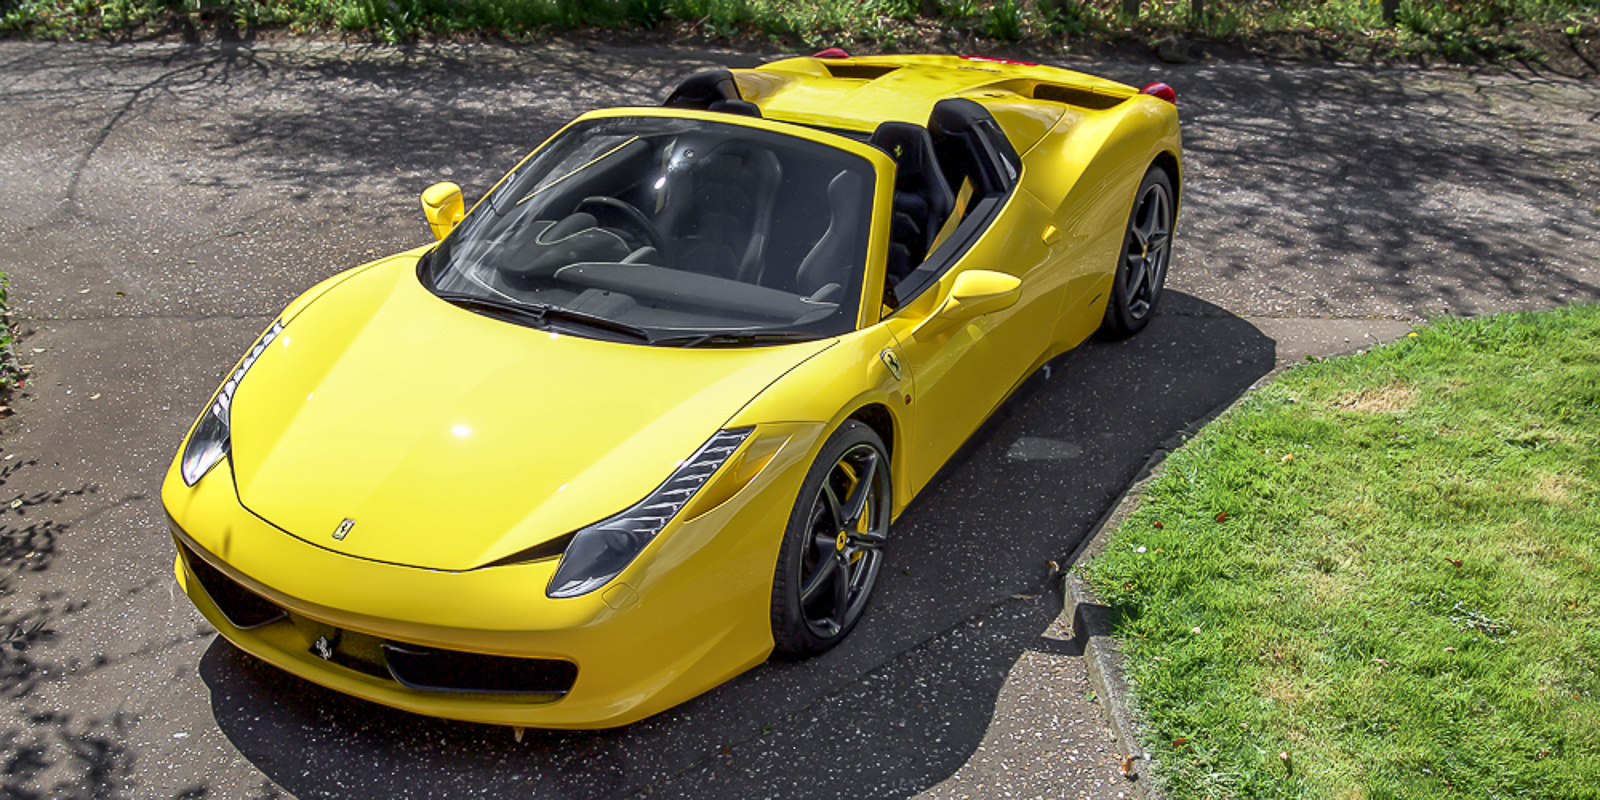 Ferrari F458 Spider Giallo Fly